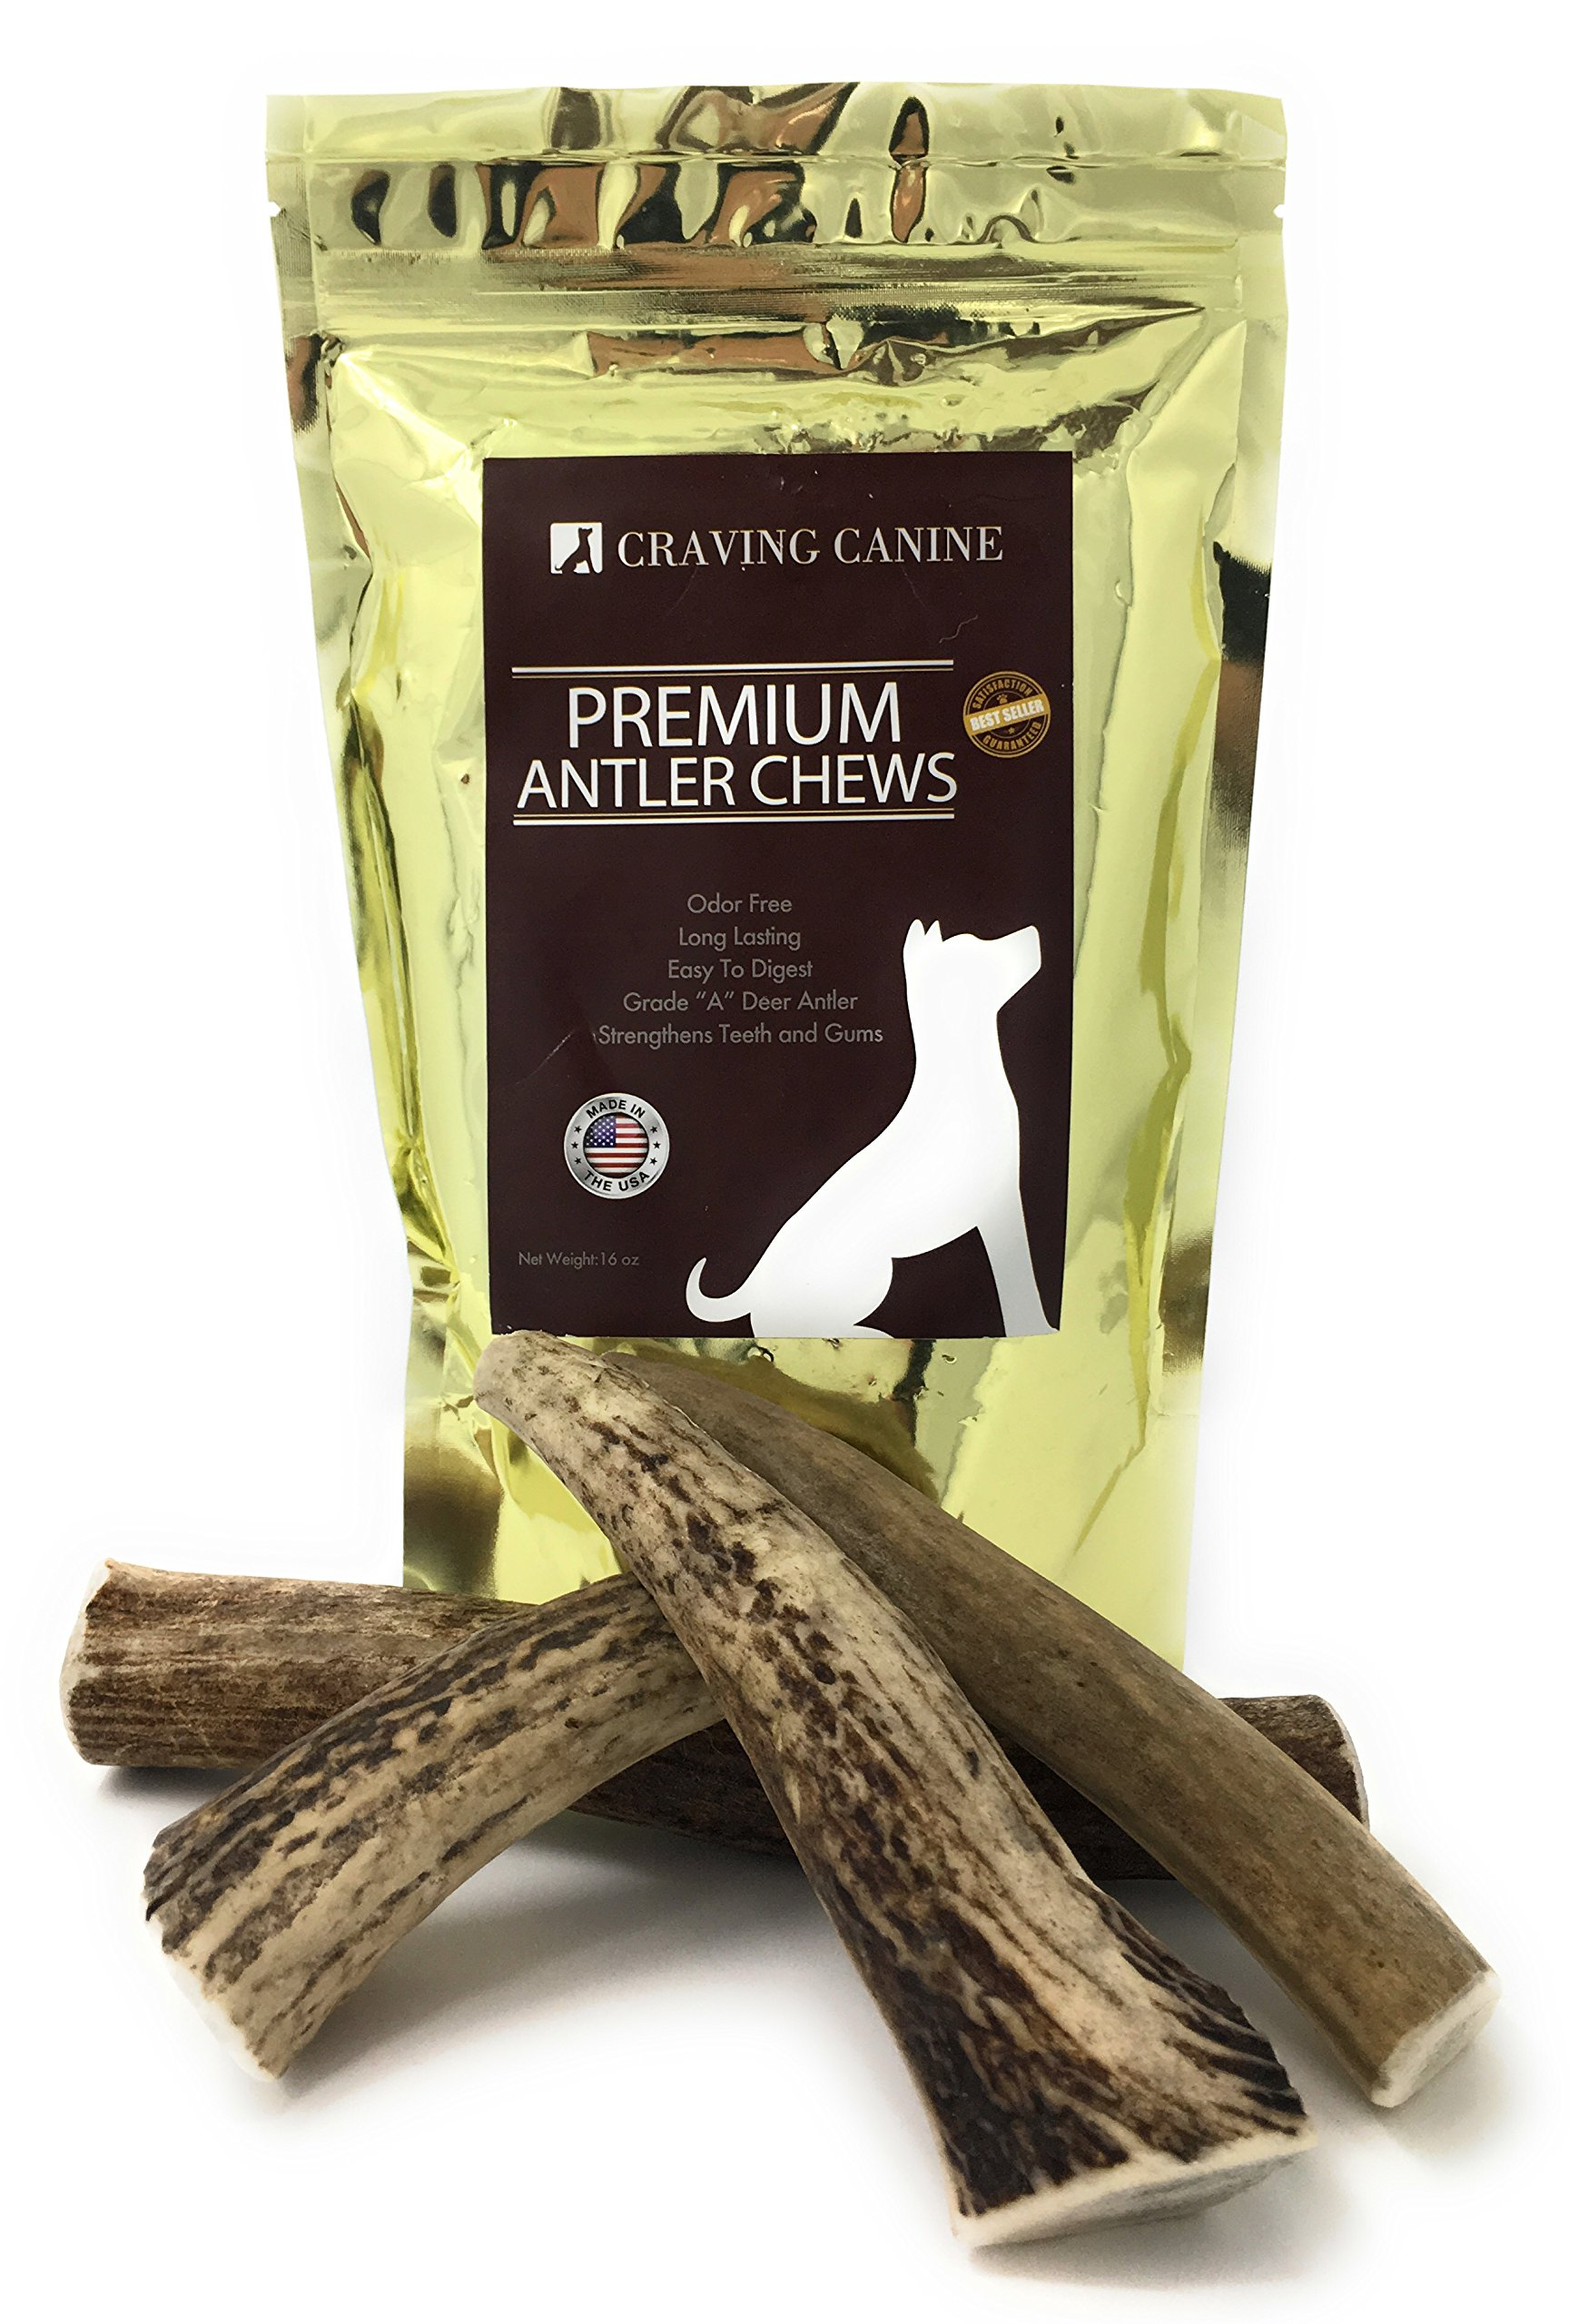 Craving Canine Grade A USA Deer Antlers For Dogs! Odorless, Split Resistant Horns For Aggressive Chewers! Long Lasting & Easy to Digest Antler Full Of Glucosamine For Healthy Joints! 1 lbs (Medium)